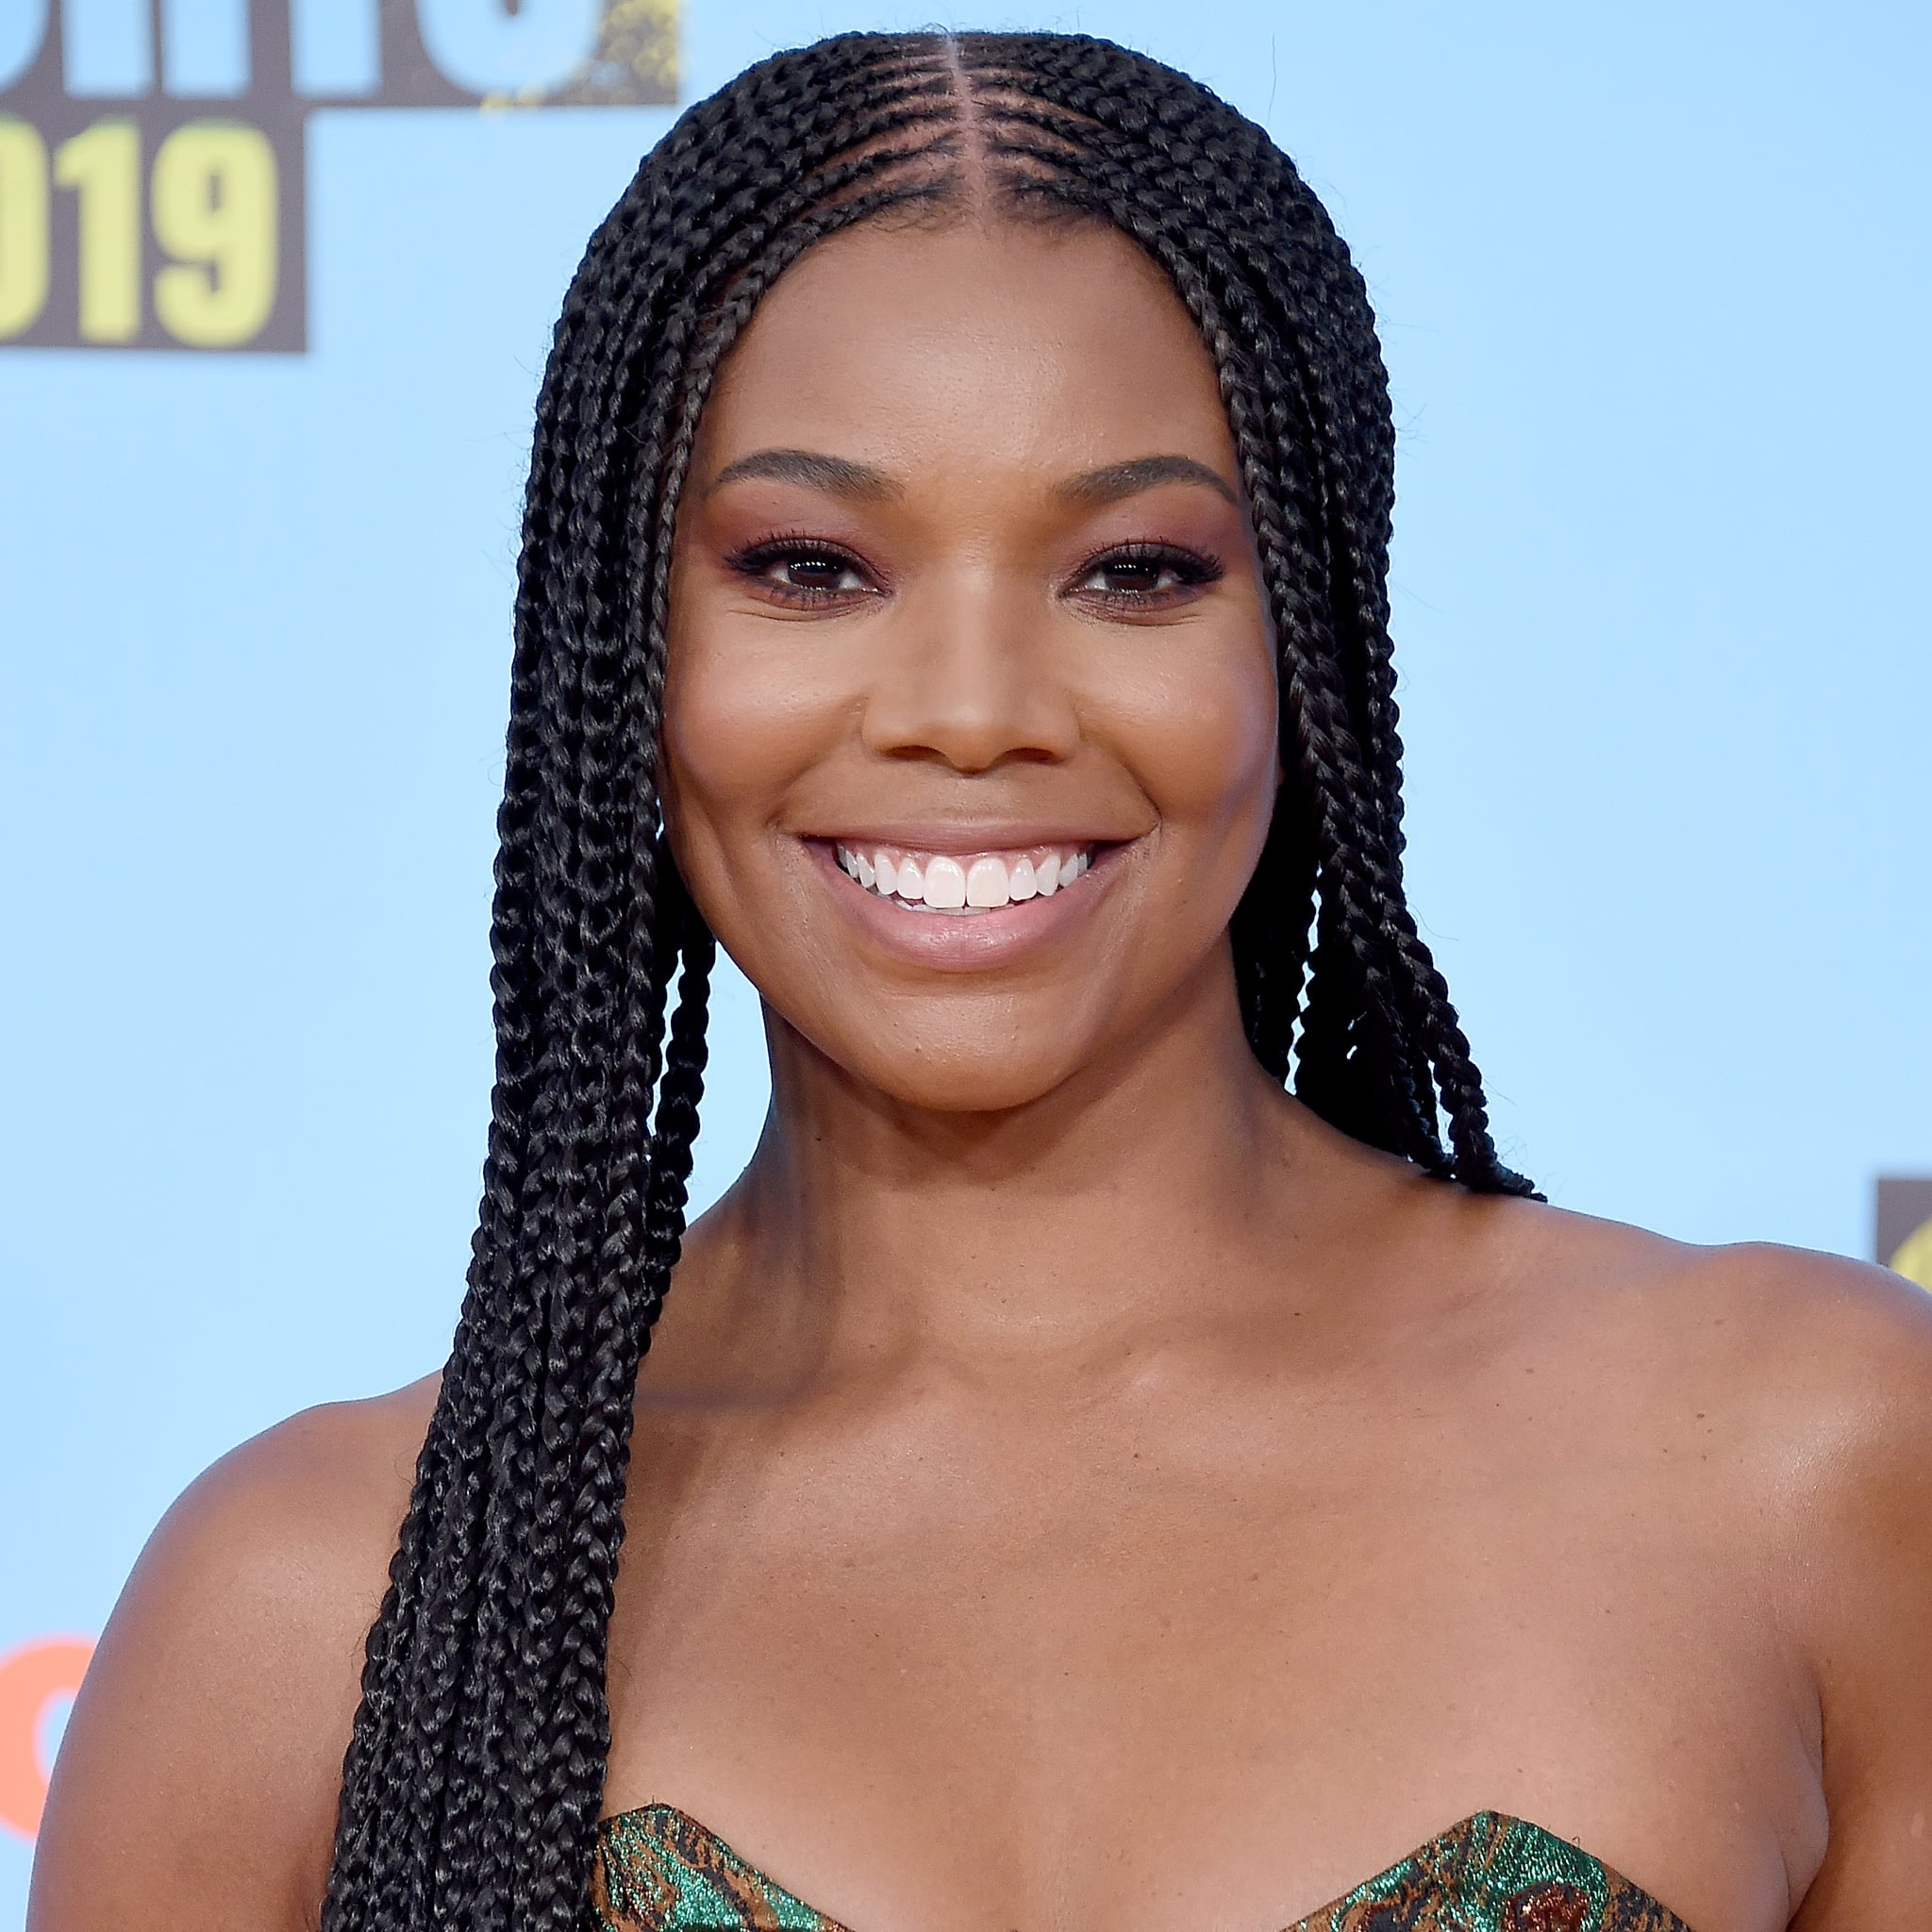 Gabrielle Union Flaunts Her Happiness On Social Media – Check Out Her Pics Here